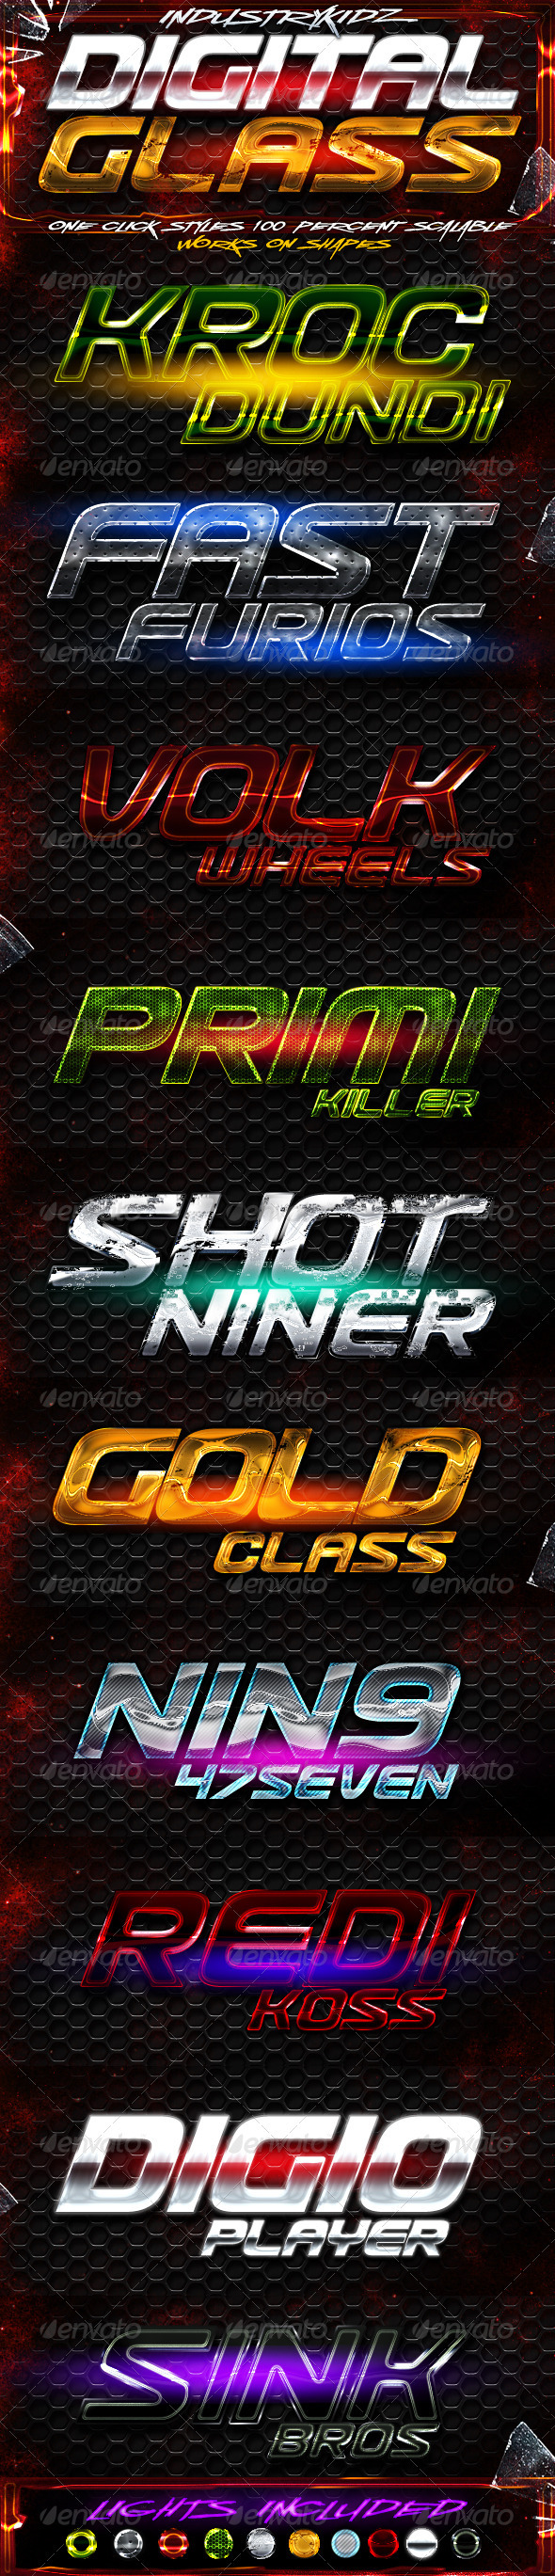 Digital Glass Photoshop Styles - Text Effects Styles